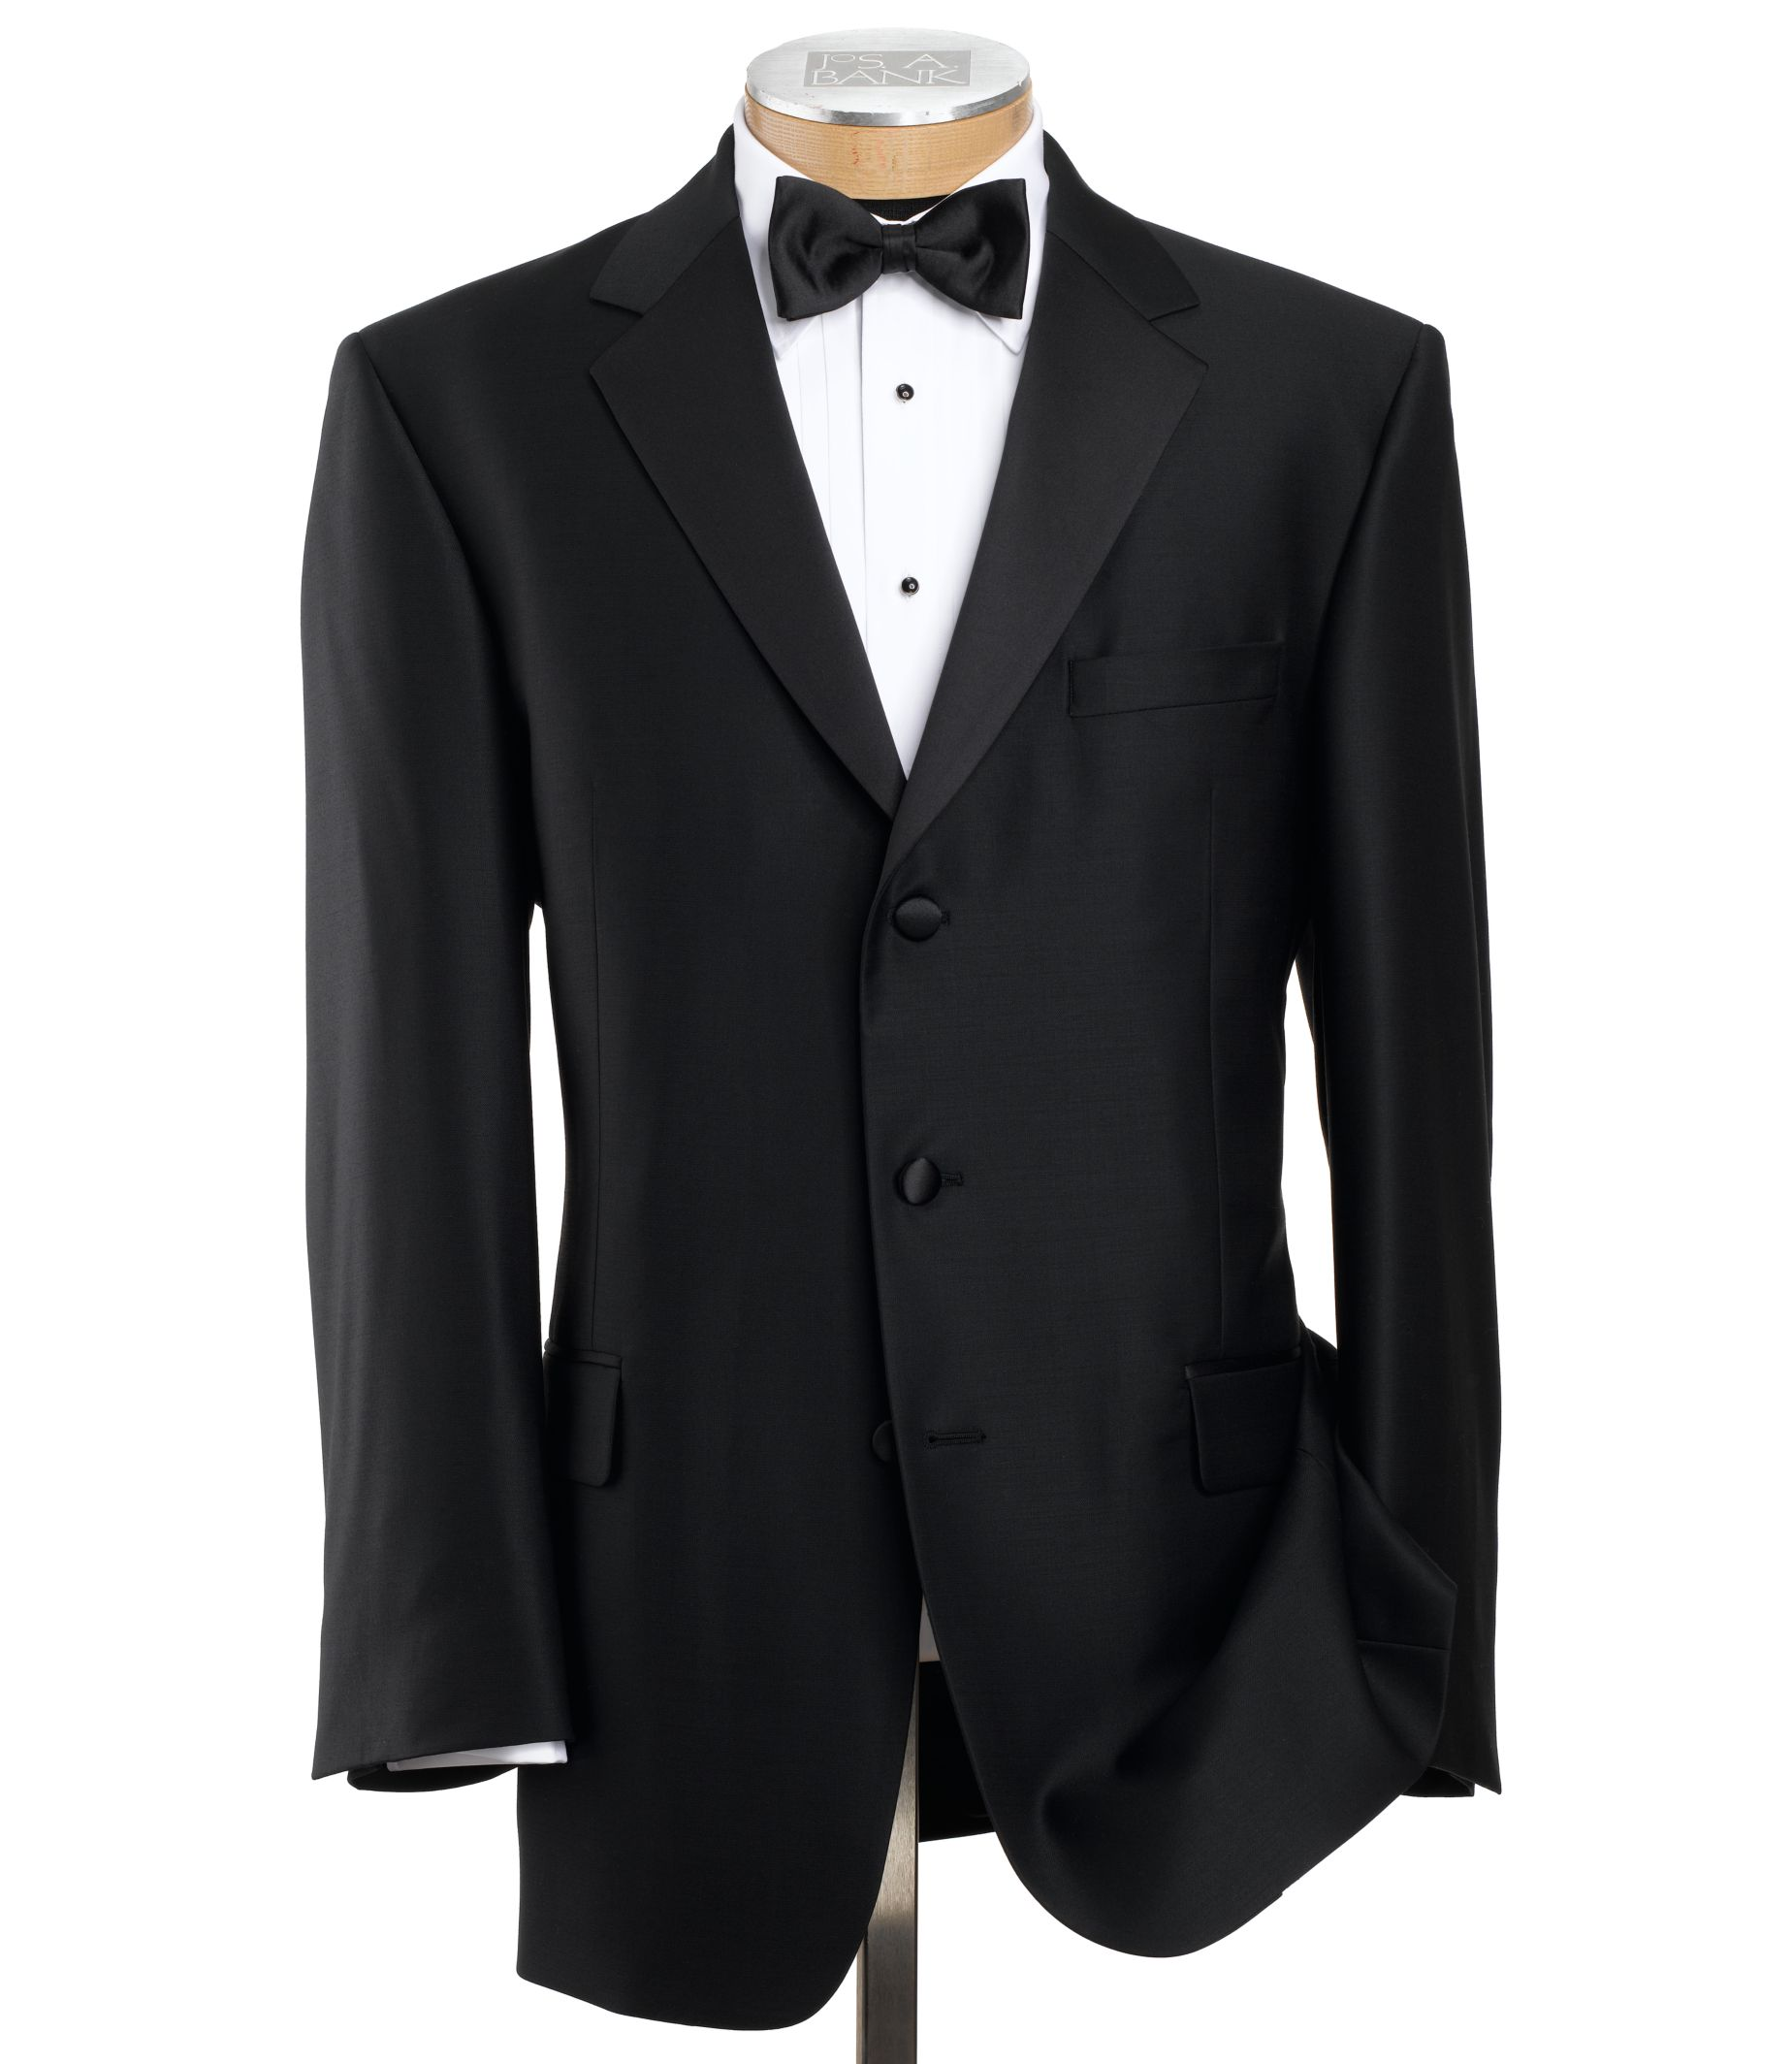 Men's Suit Signature Black 3-Button Notch Lapel JoS. A. Bank - BLACK - 44 - LONG